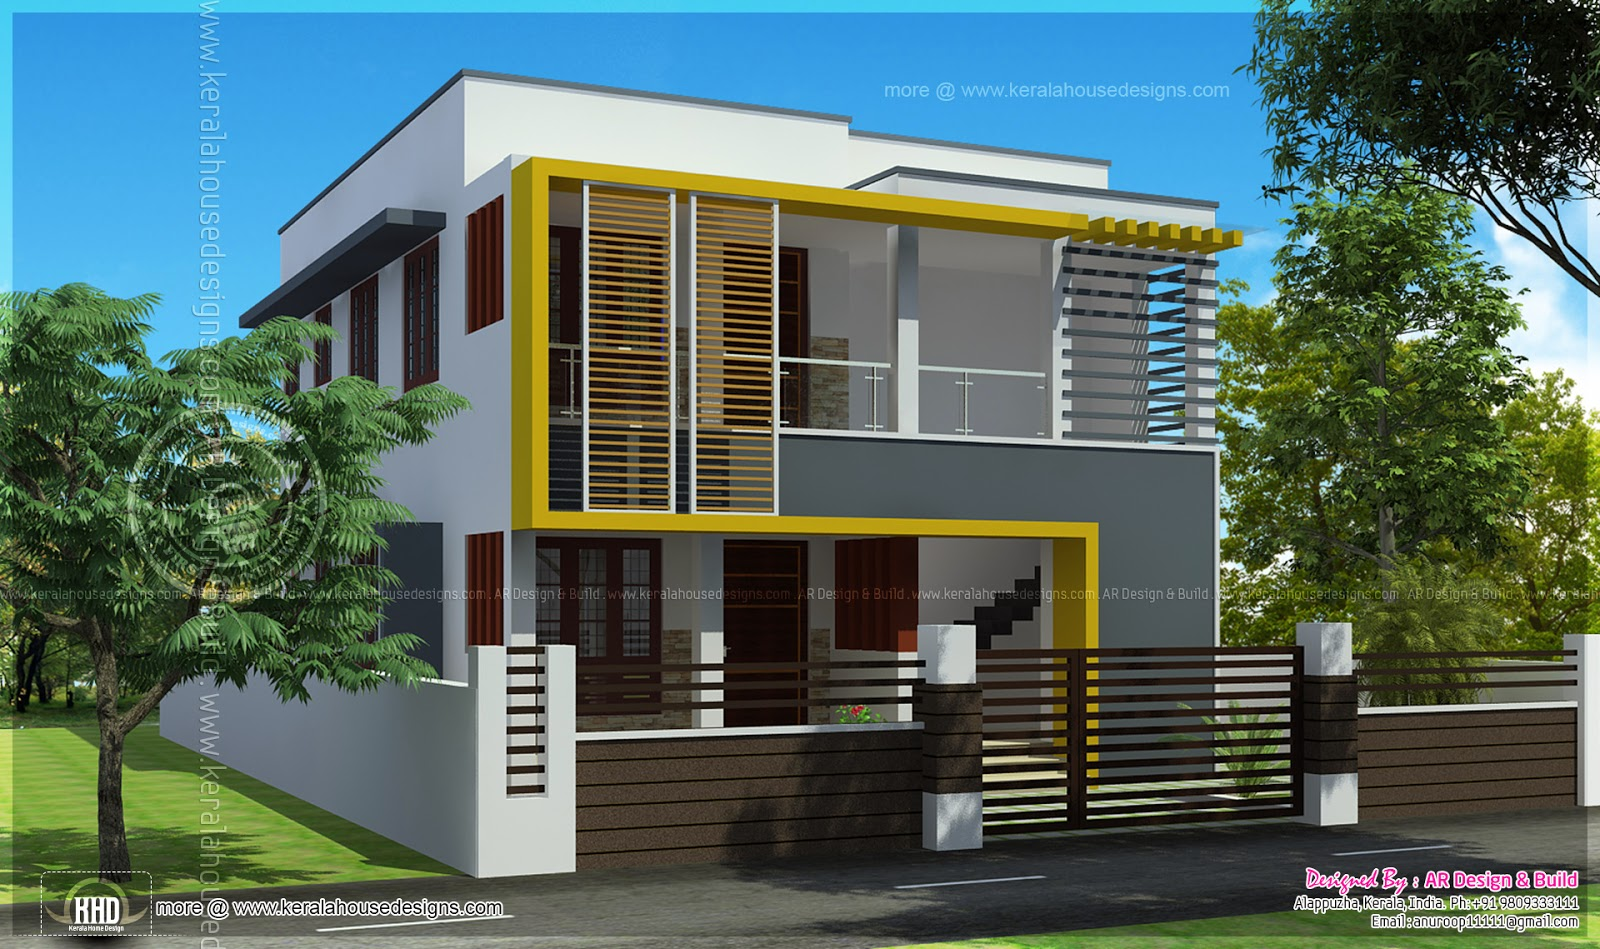 Duplex house elevation 1000 sq feet each kerala home for Small duplex house plans in india